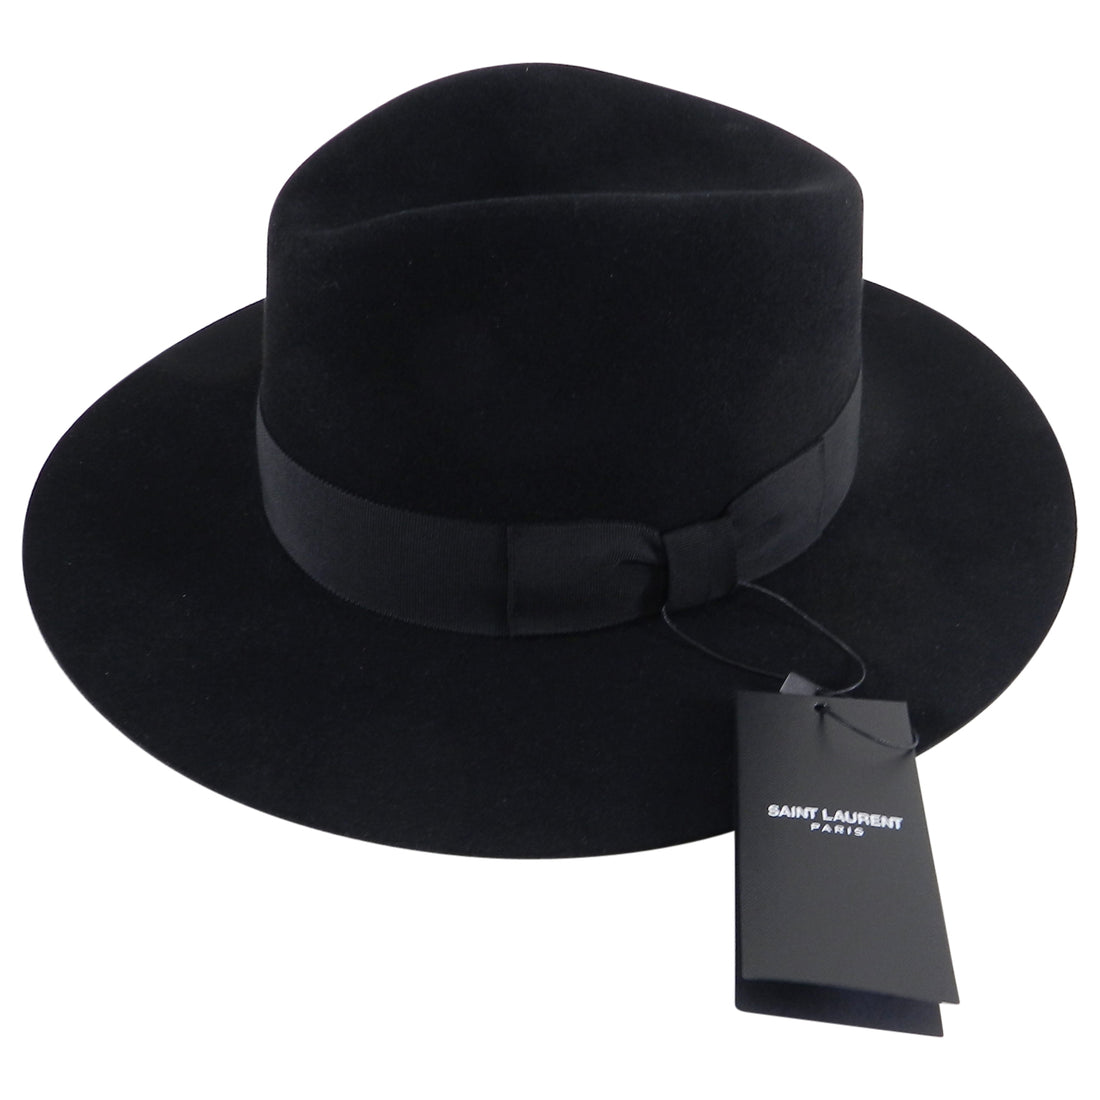 Saint Laurent mens Fall 2016 Black Felt Fedora Wide Brim Hat - XL